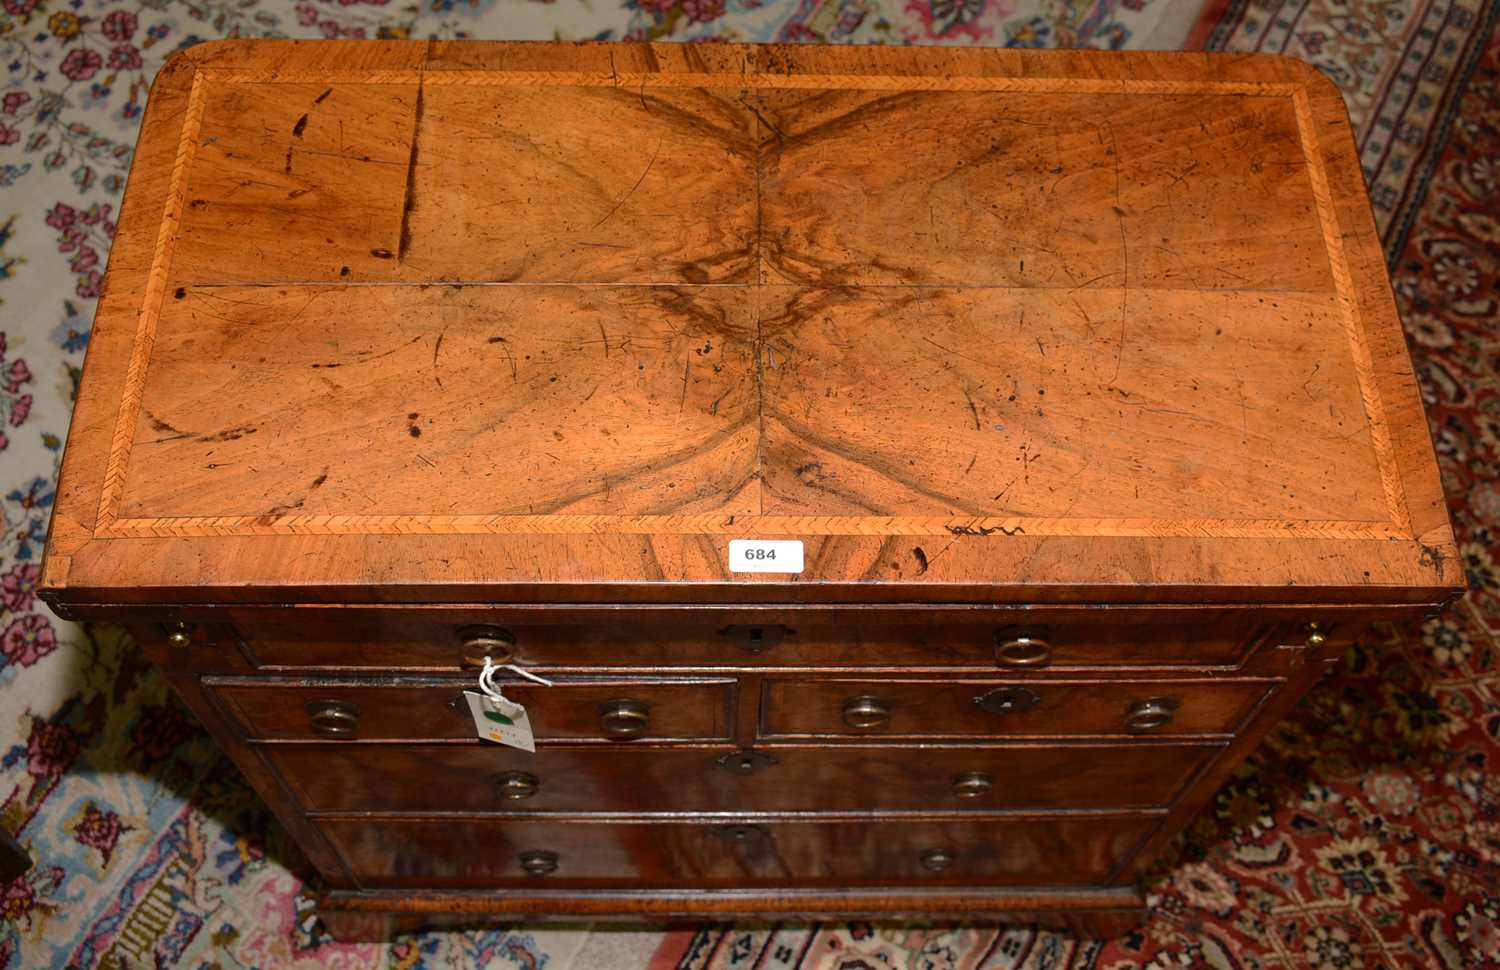 Early 18th Century walnut bachelors chest - Image 9 of 39